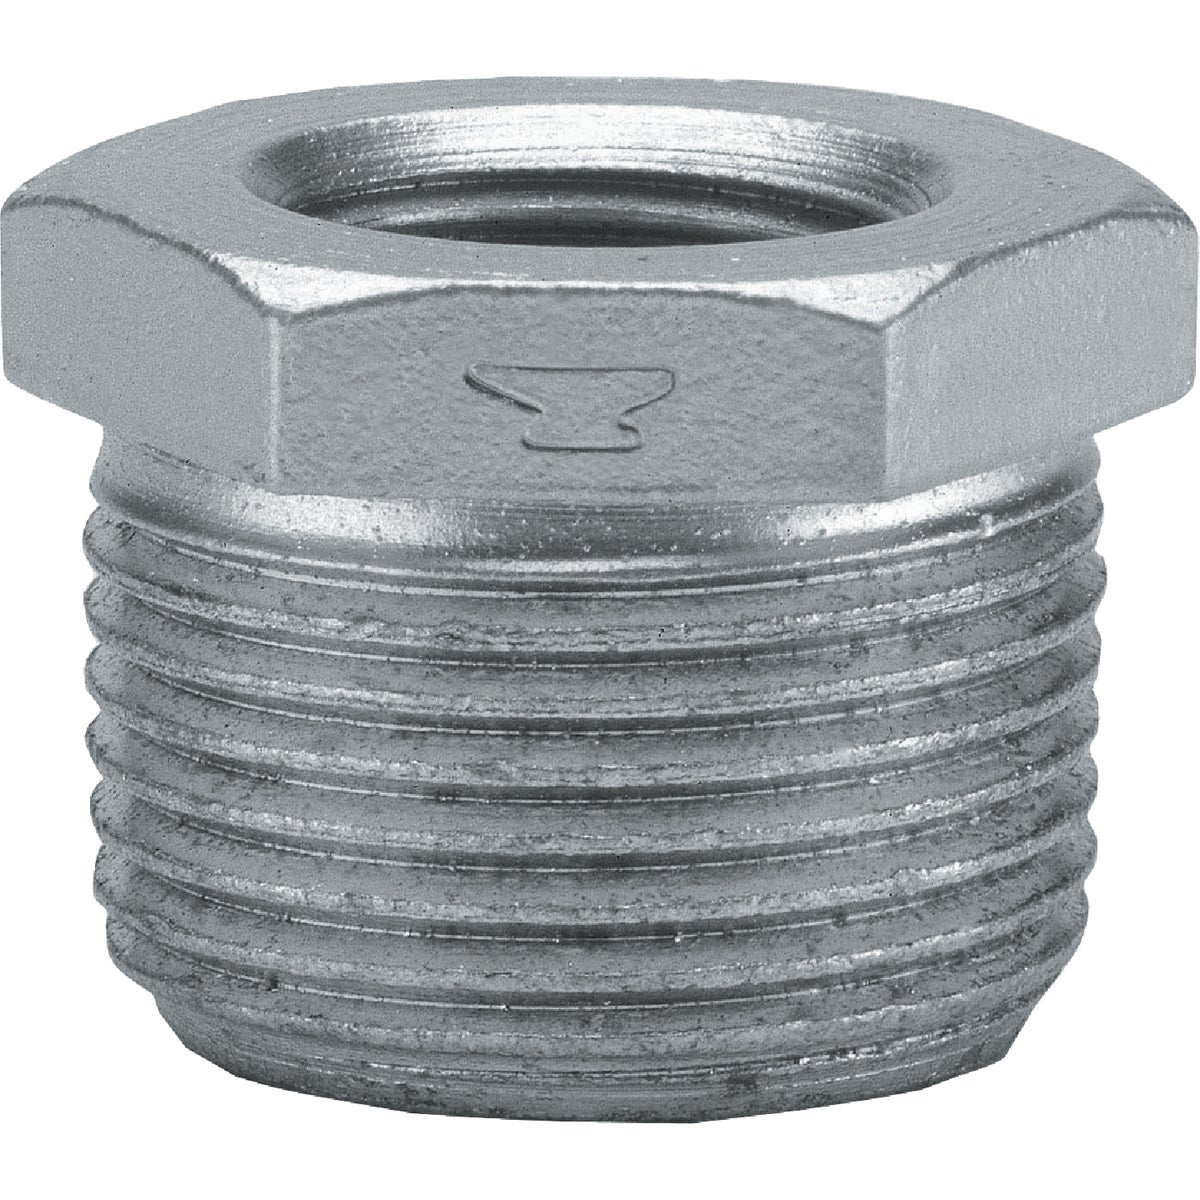 1-1/4X1 GALV BUSHING - 8700131009 by Anvil International